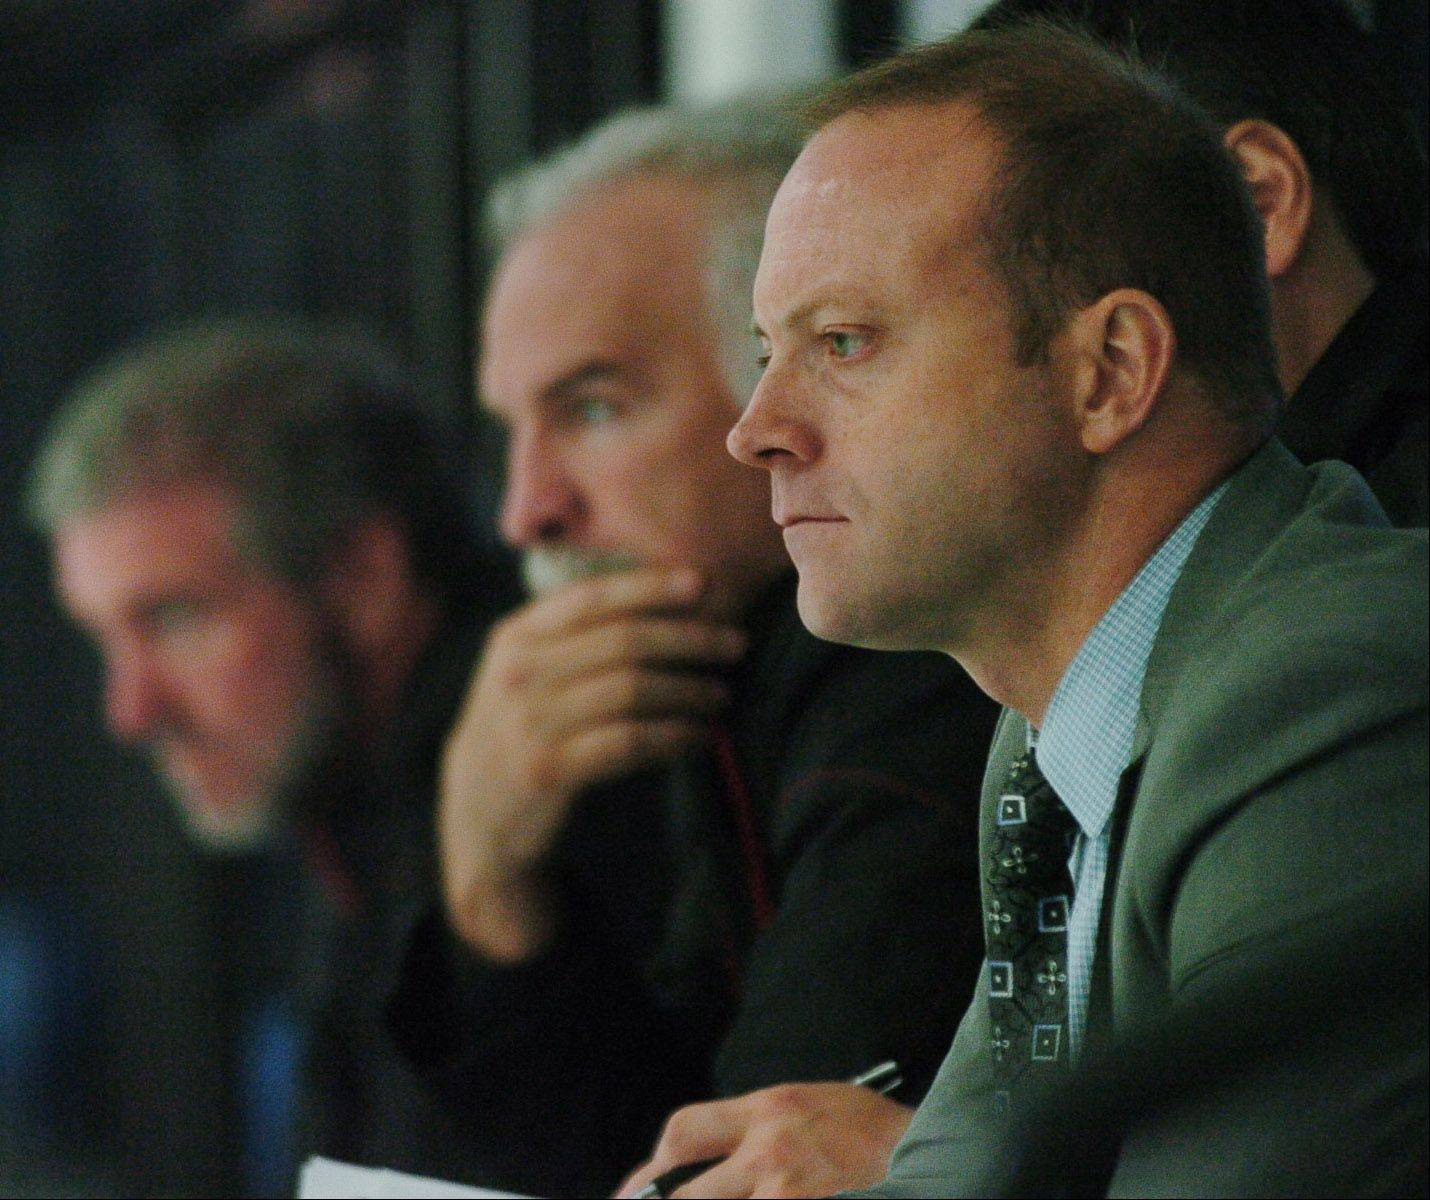 Blackhawks general manager Stan Bowman, right, sits with coach Joel Quenneville during a pre-season practice.